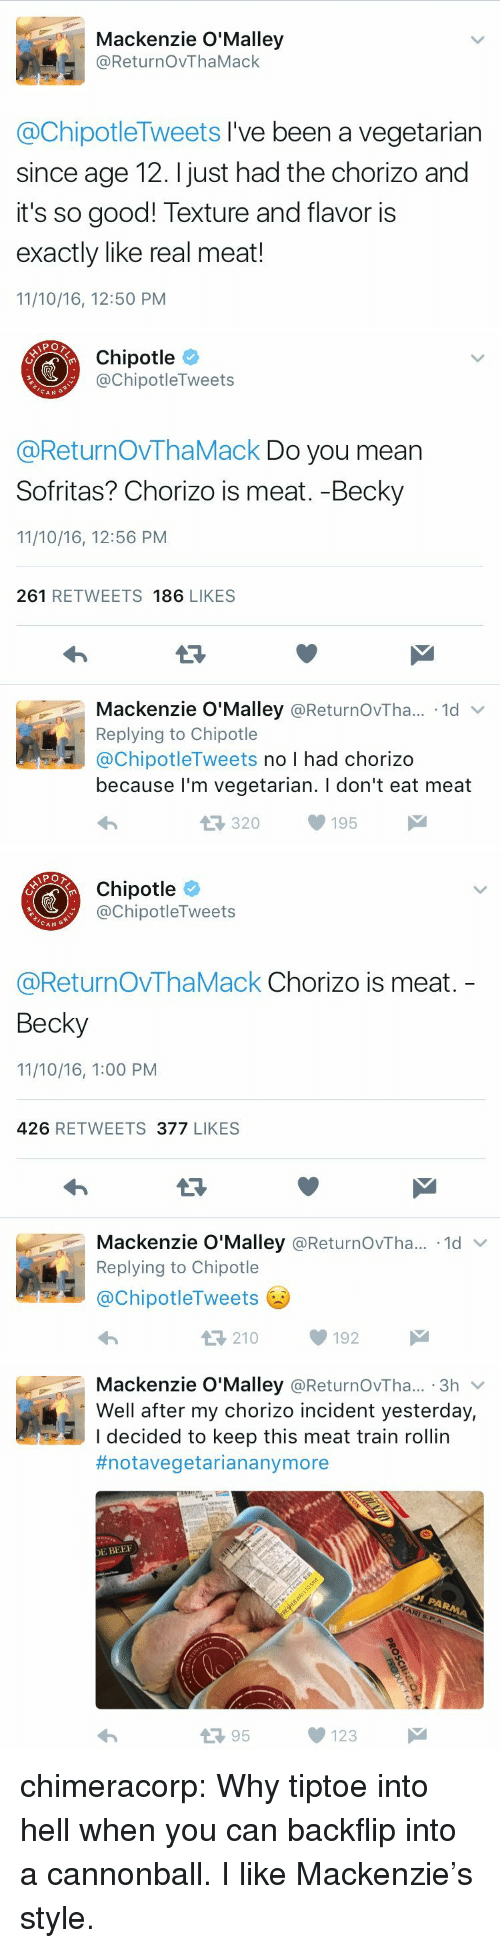 mackenzie: Mackenzie O'Malley  @ReturnOvThaMack  @ChipotleTweets I've been a vegetarian  since age 12. I just had the chorizo and  it's so good! Texture and flavor is  exactly like real meat!  11/10/16, 12:50 PM   Chipotle  @ChipotleTweets  CAN  @ReturnOVThaMack Do you mean  Sofritas? Chorizo is meat. -Becky  11/10/16, 12:56 PM  261 RETWEETS 186 LIKES  Mackenzie O'Malley @ReturnOvTha.. 1d  Replying to Chipotle  @ChipotleTweets no I had chorizo  because l'm vegetarian. I don't eat meat  320195   Chipotle  @ChipotleTweets  CAN G  @ReturnOvThaMack Chorizo is meat.  Becky  11/10/16, 1:00 PM  426 RETWEETS 377 LIKES  Mackenzie O'Malley @ReturnOvTha...-1d ﹀  Replying to Chipotle  @ChipotleTweets  わ  210192   Mackenzie O'Malley @ReturnOvTha... 3h v  Well after my chorizo incident yesterday,  I decided to keep this meat train rollin  #notavegetariananymore  E BEE  13 95  123 chimeracorp:  Why tiptoe into hell when you can backflip into a cannonball. I like Mackenzie's style.